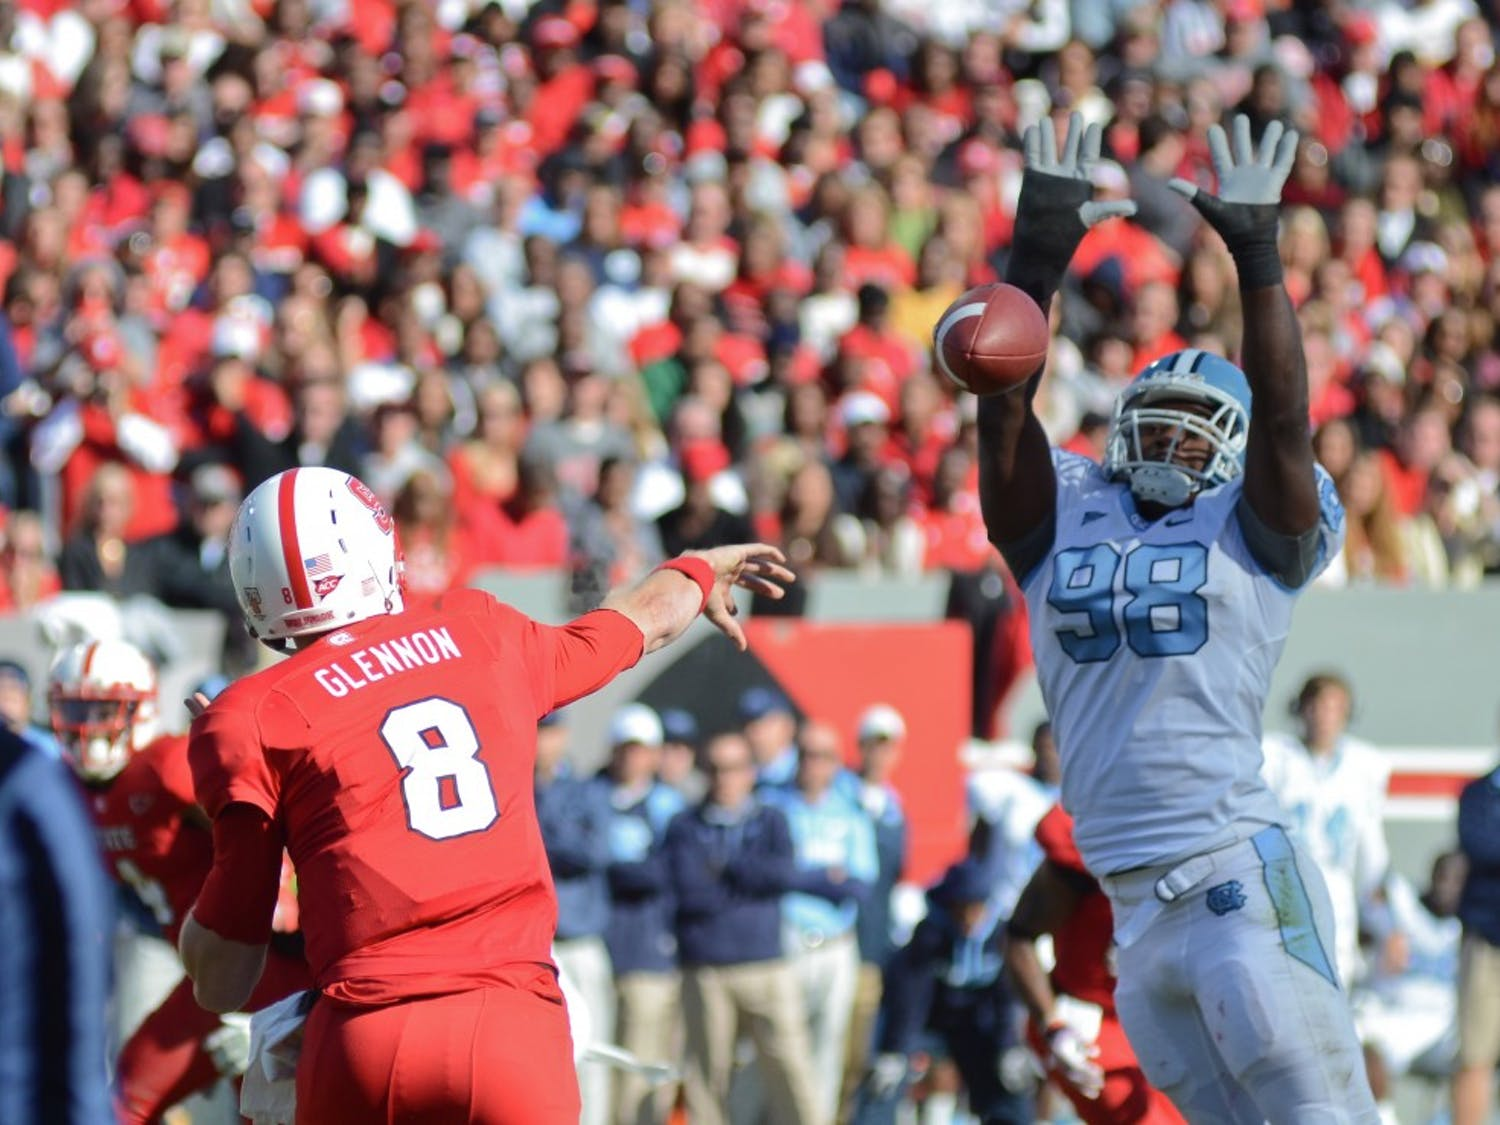 UNC defensive end Donte Paige-Moss attempts to block NC State quaterback Mike Glennon's pass in UNC's 13-0 loss to NC State at Carter-Finley Stadium in Raleigh, NC.